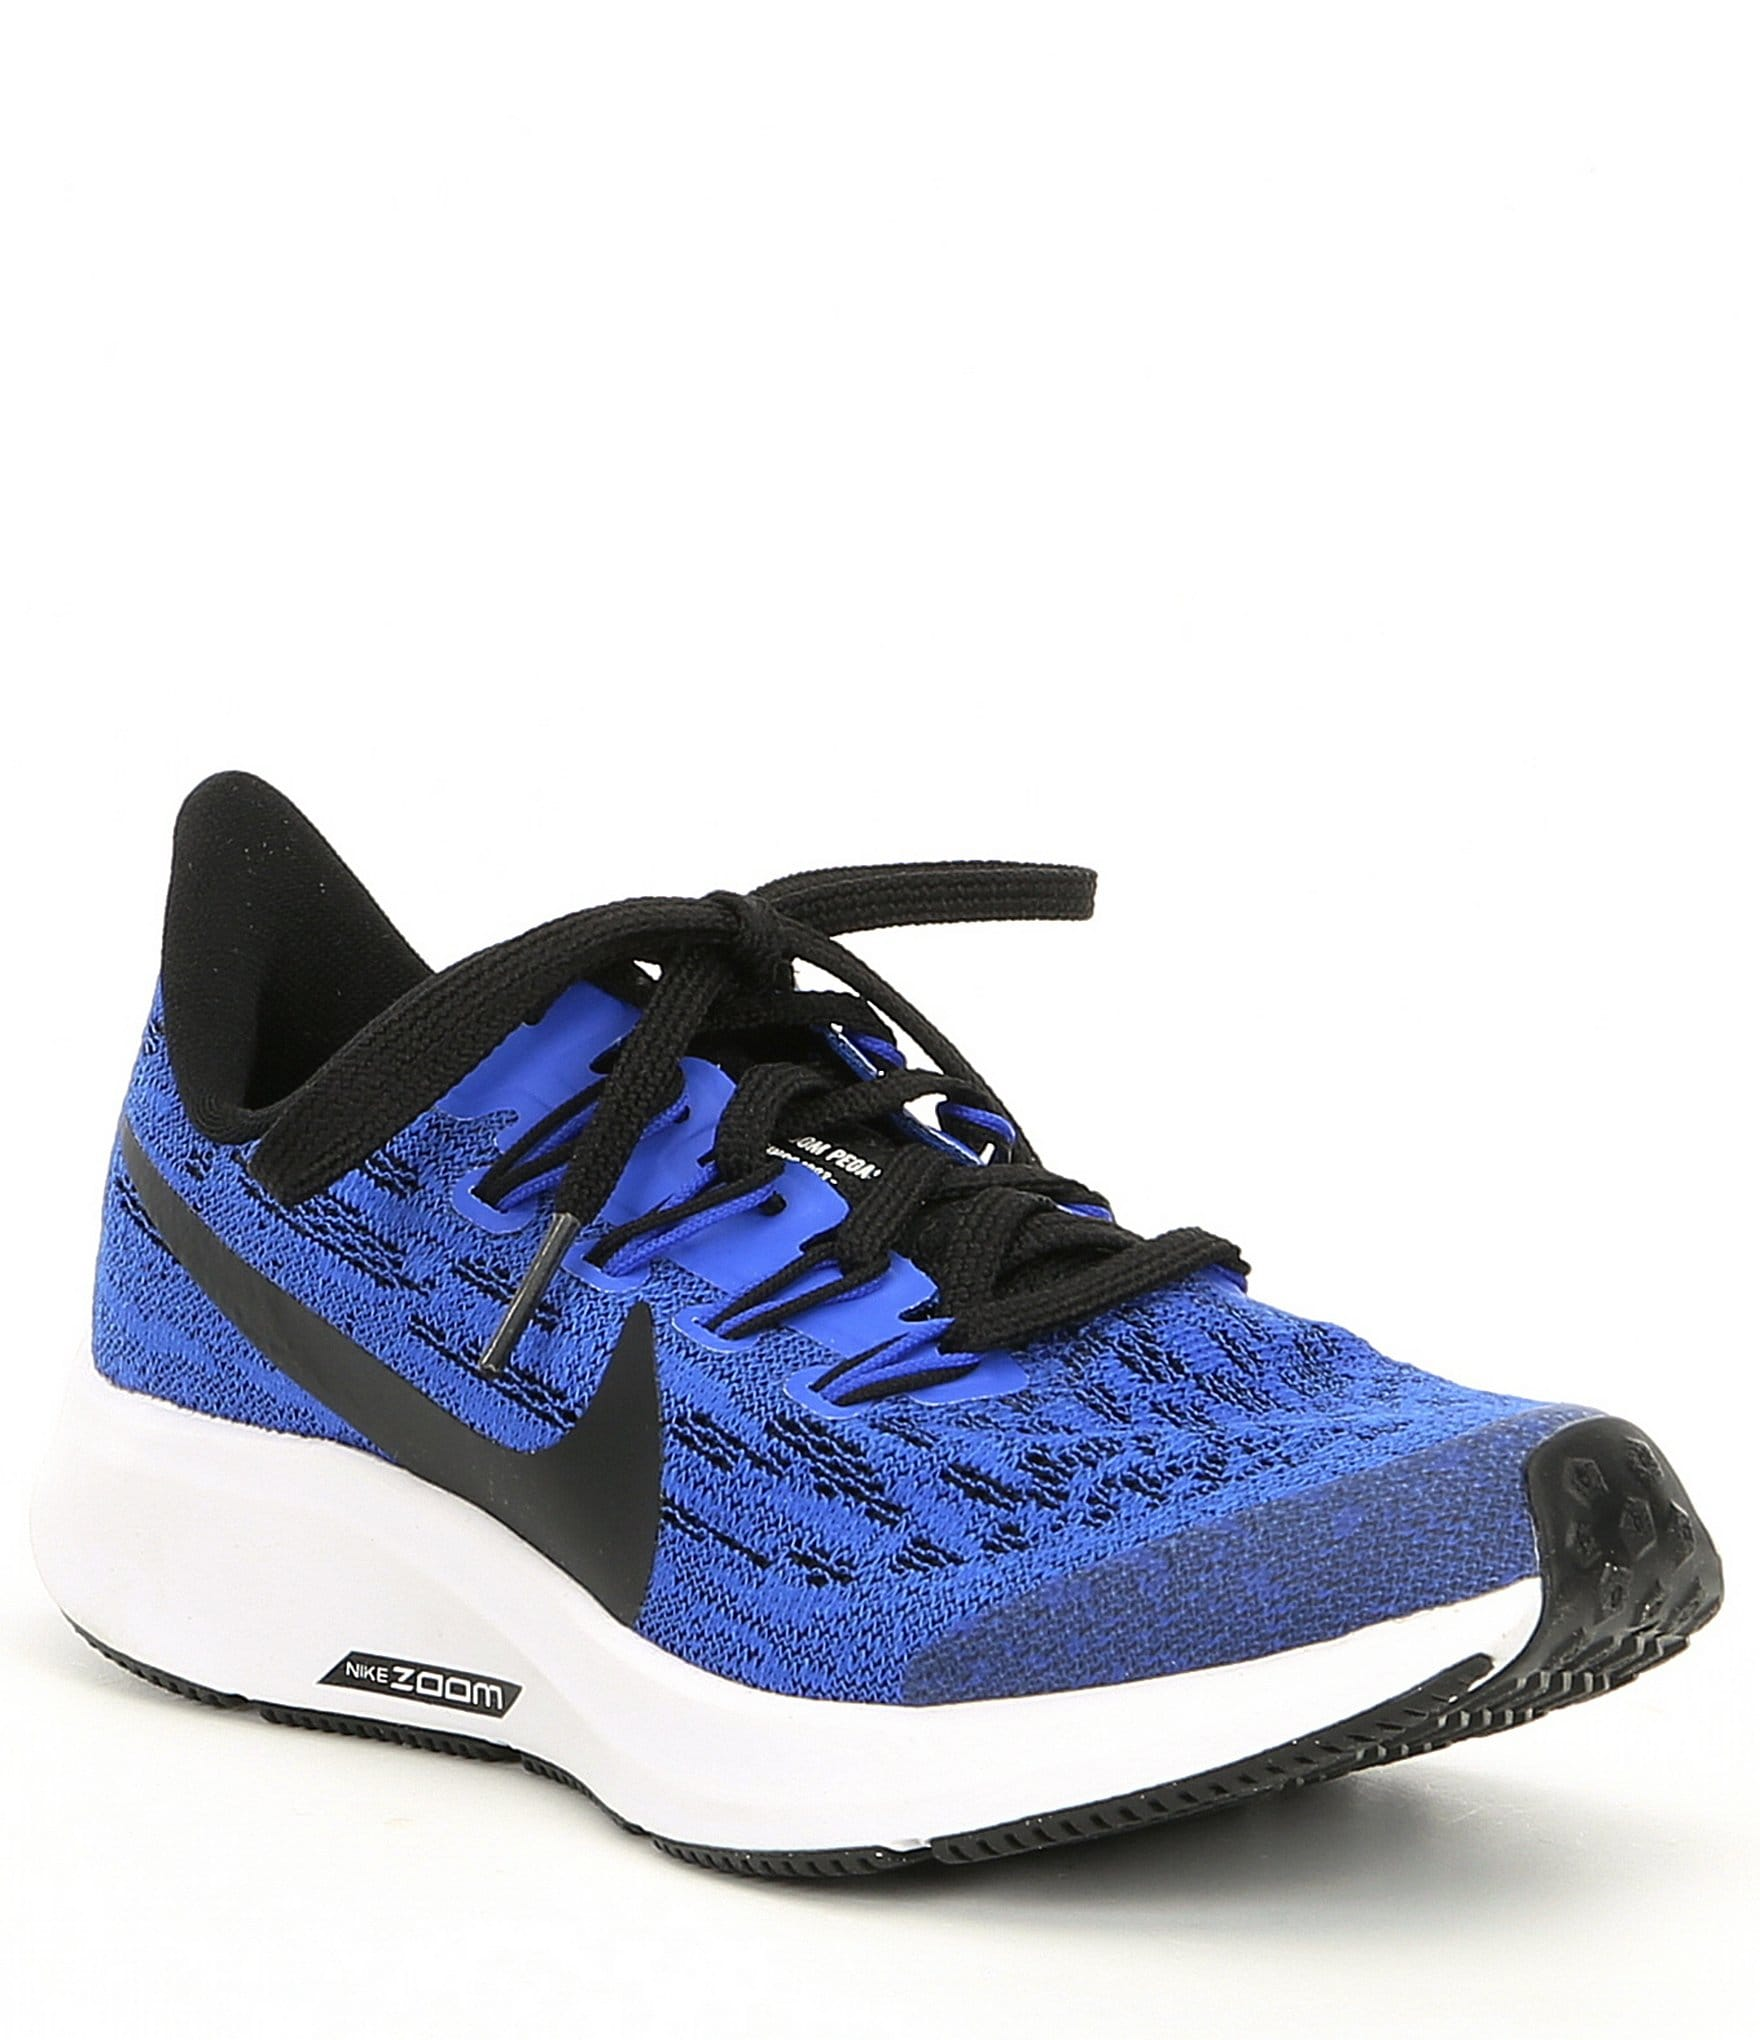 100% authentic 67015 d6c31 Nike Boys' Air Zoom Pegasus 36 Running Shoe | Dillard's